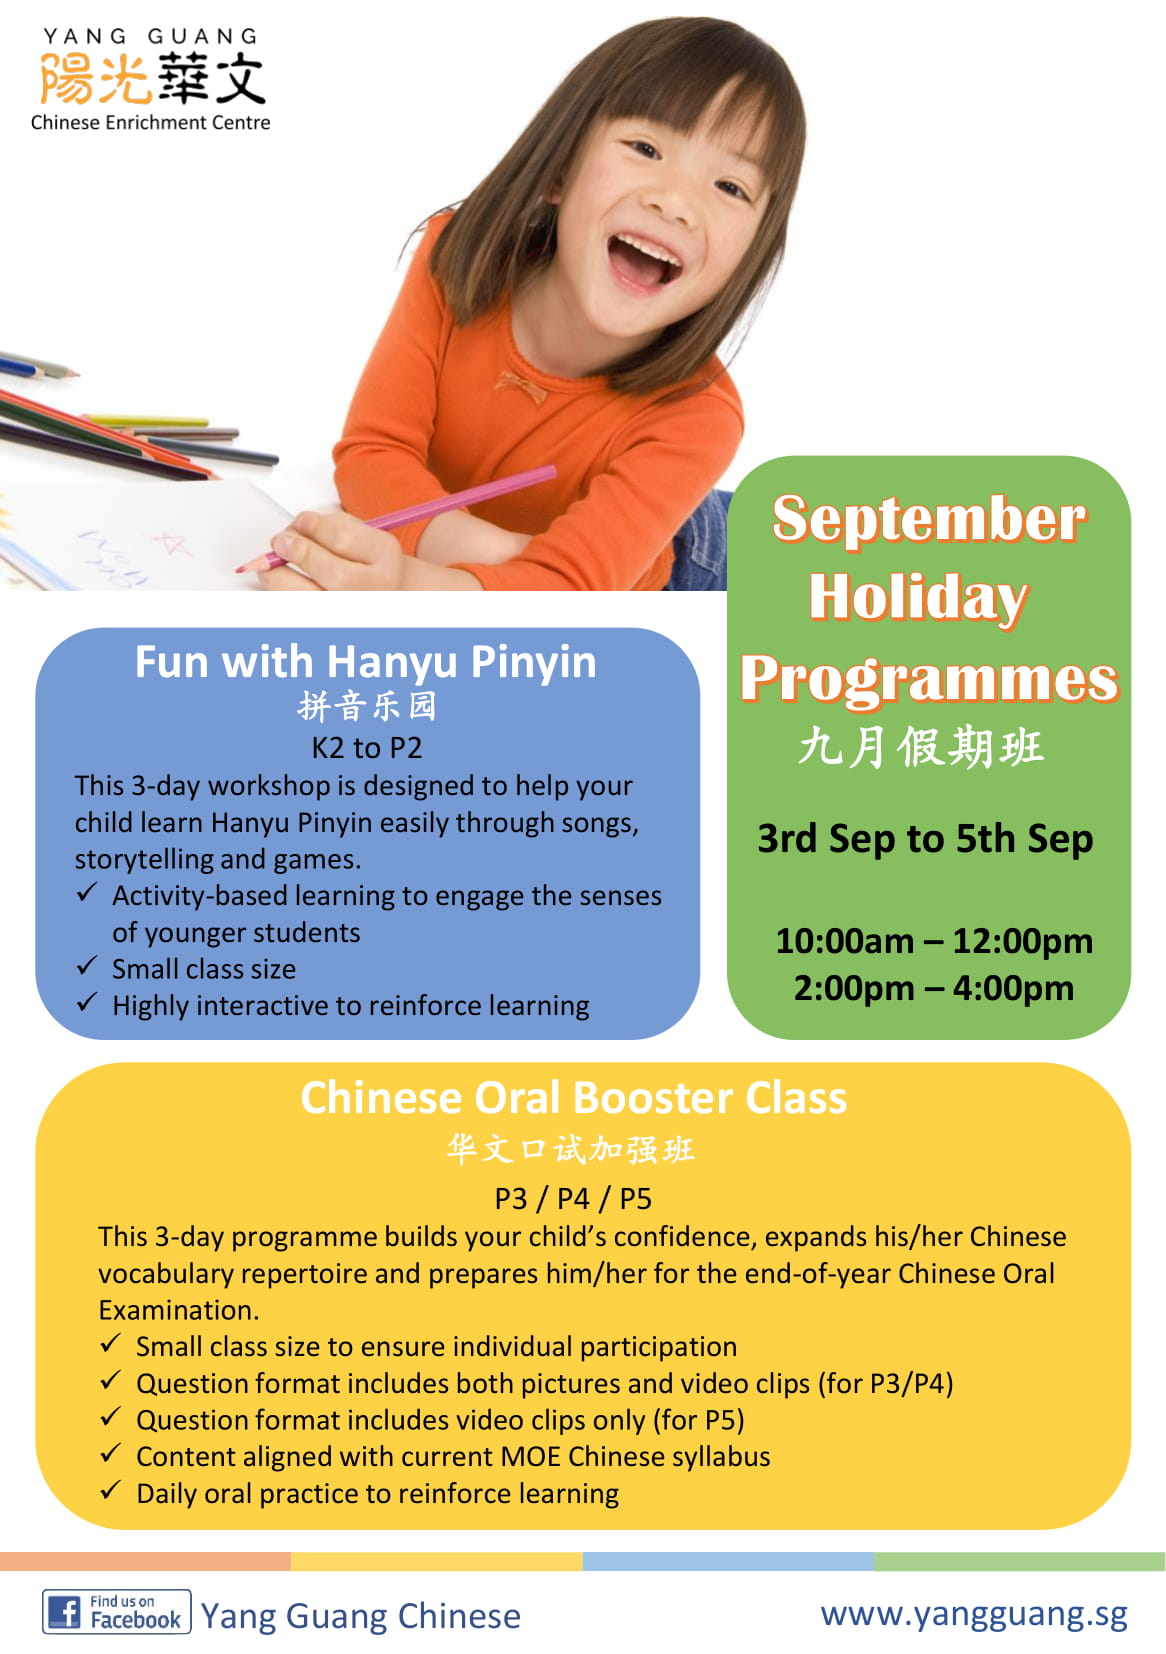 September Holiday Programmes